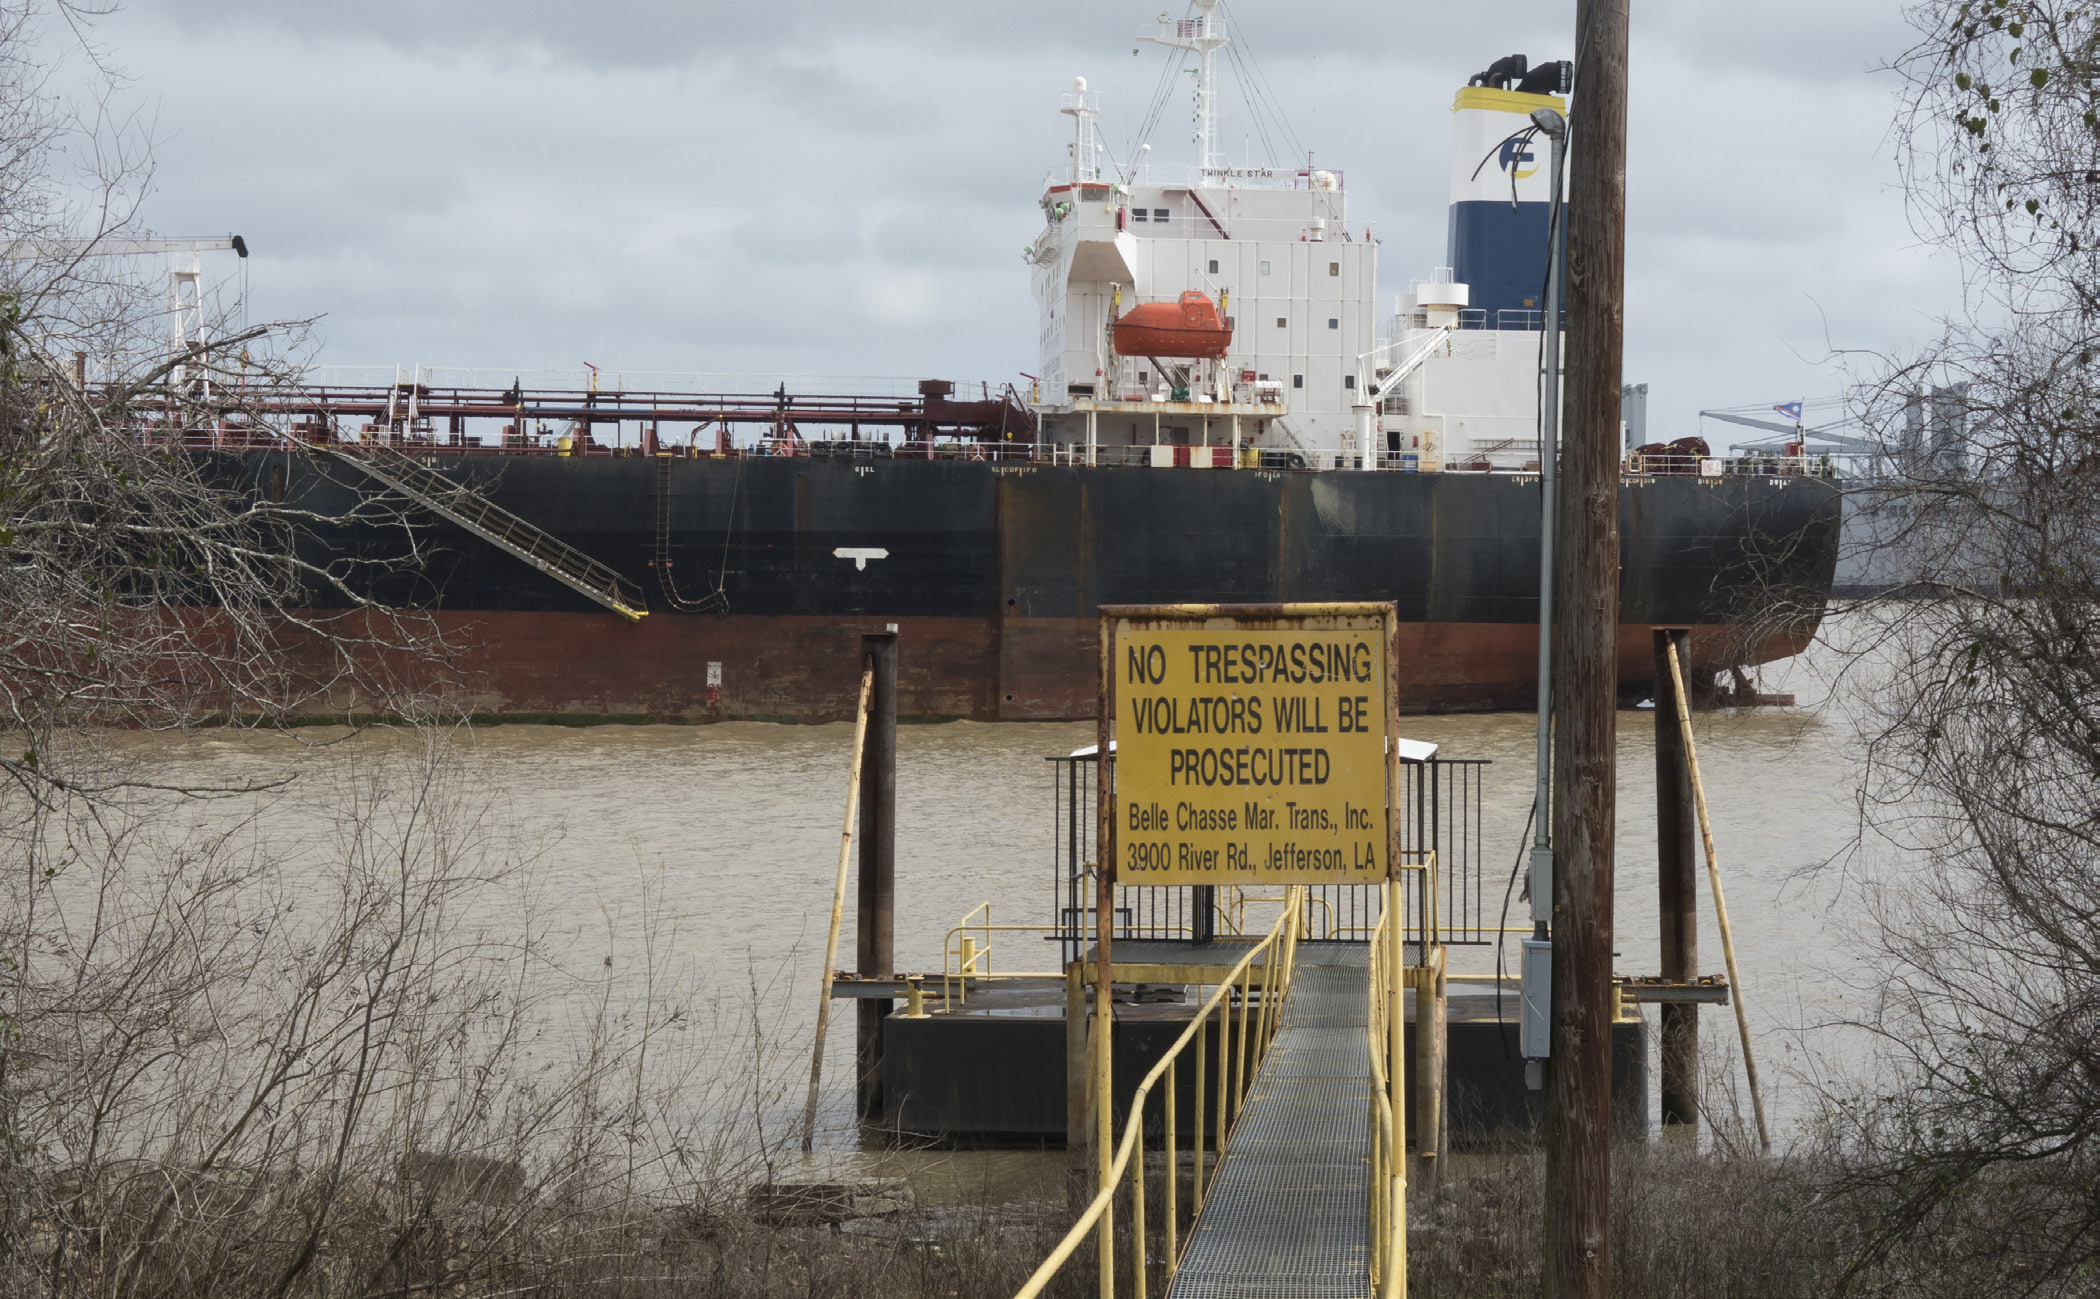 A sign reads 'NO TRESPASSING, VIOLATORS WILL BE PROSECUTED. Belle Chasse Mar. Trans., Inc. 3900 River Rd., Jefferson, LA.' that leads to a dock. A large barge is also in the photo, in the distance.